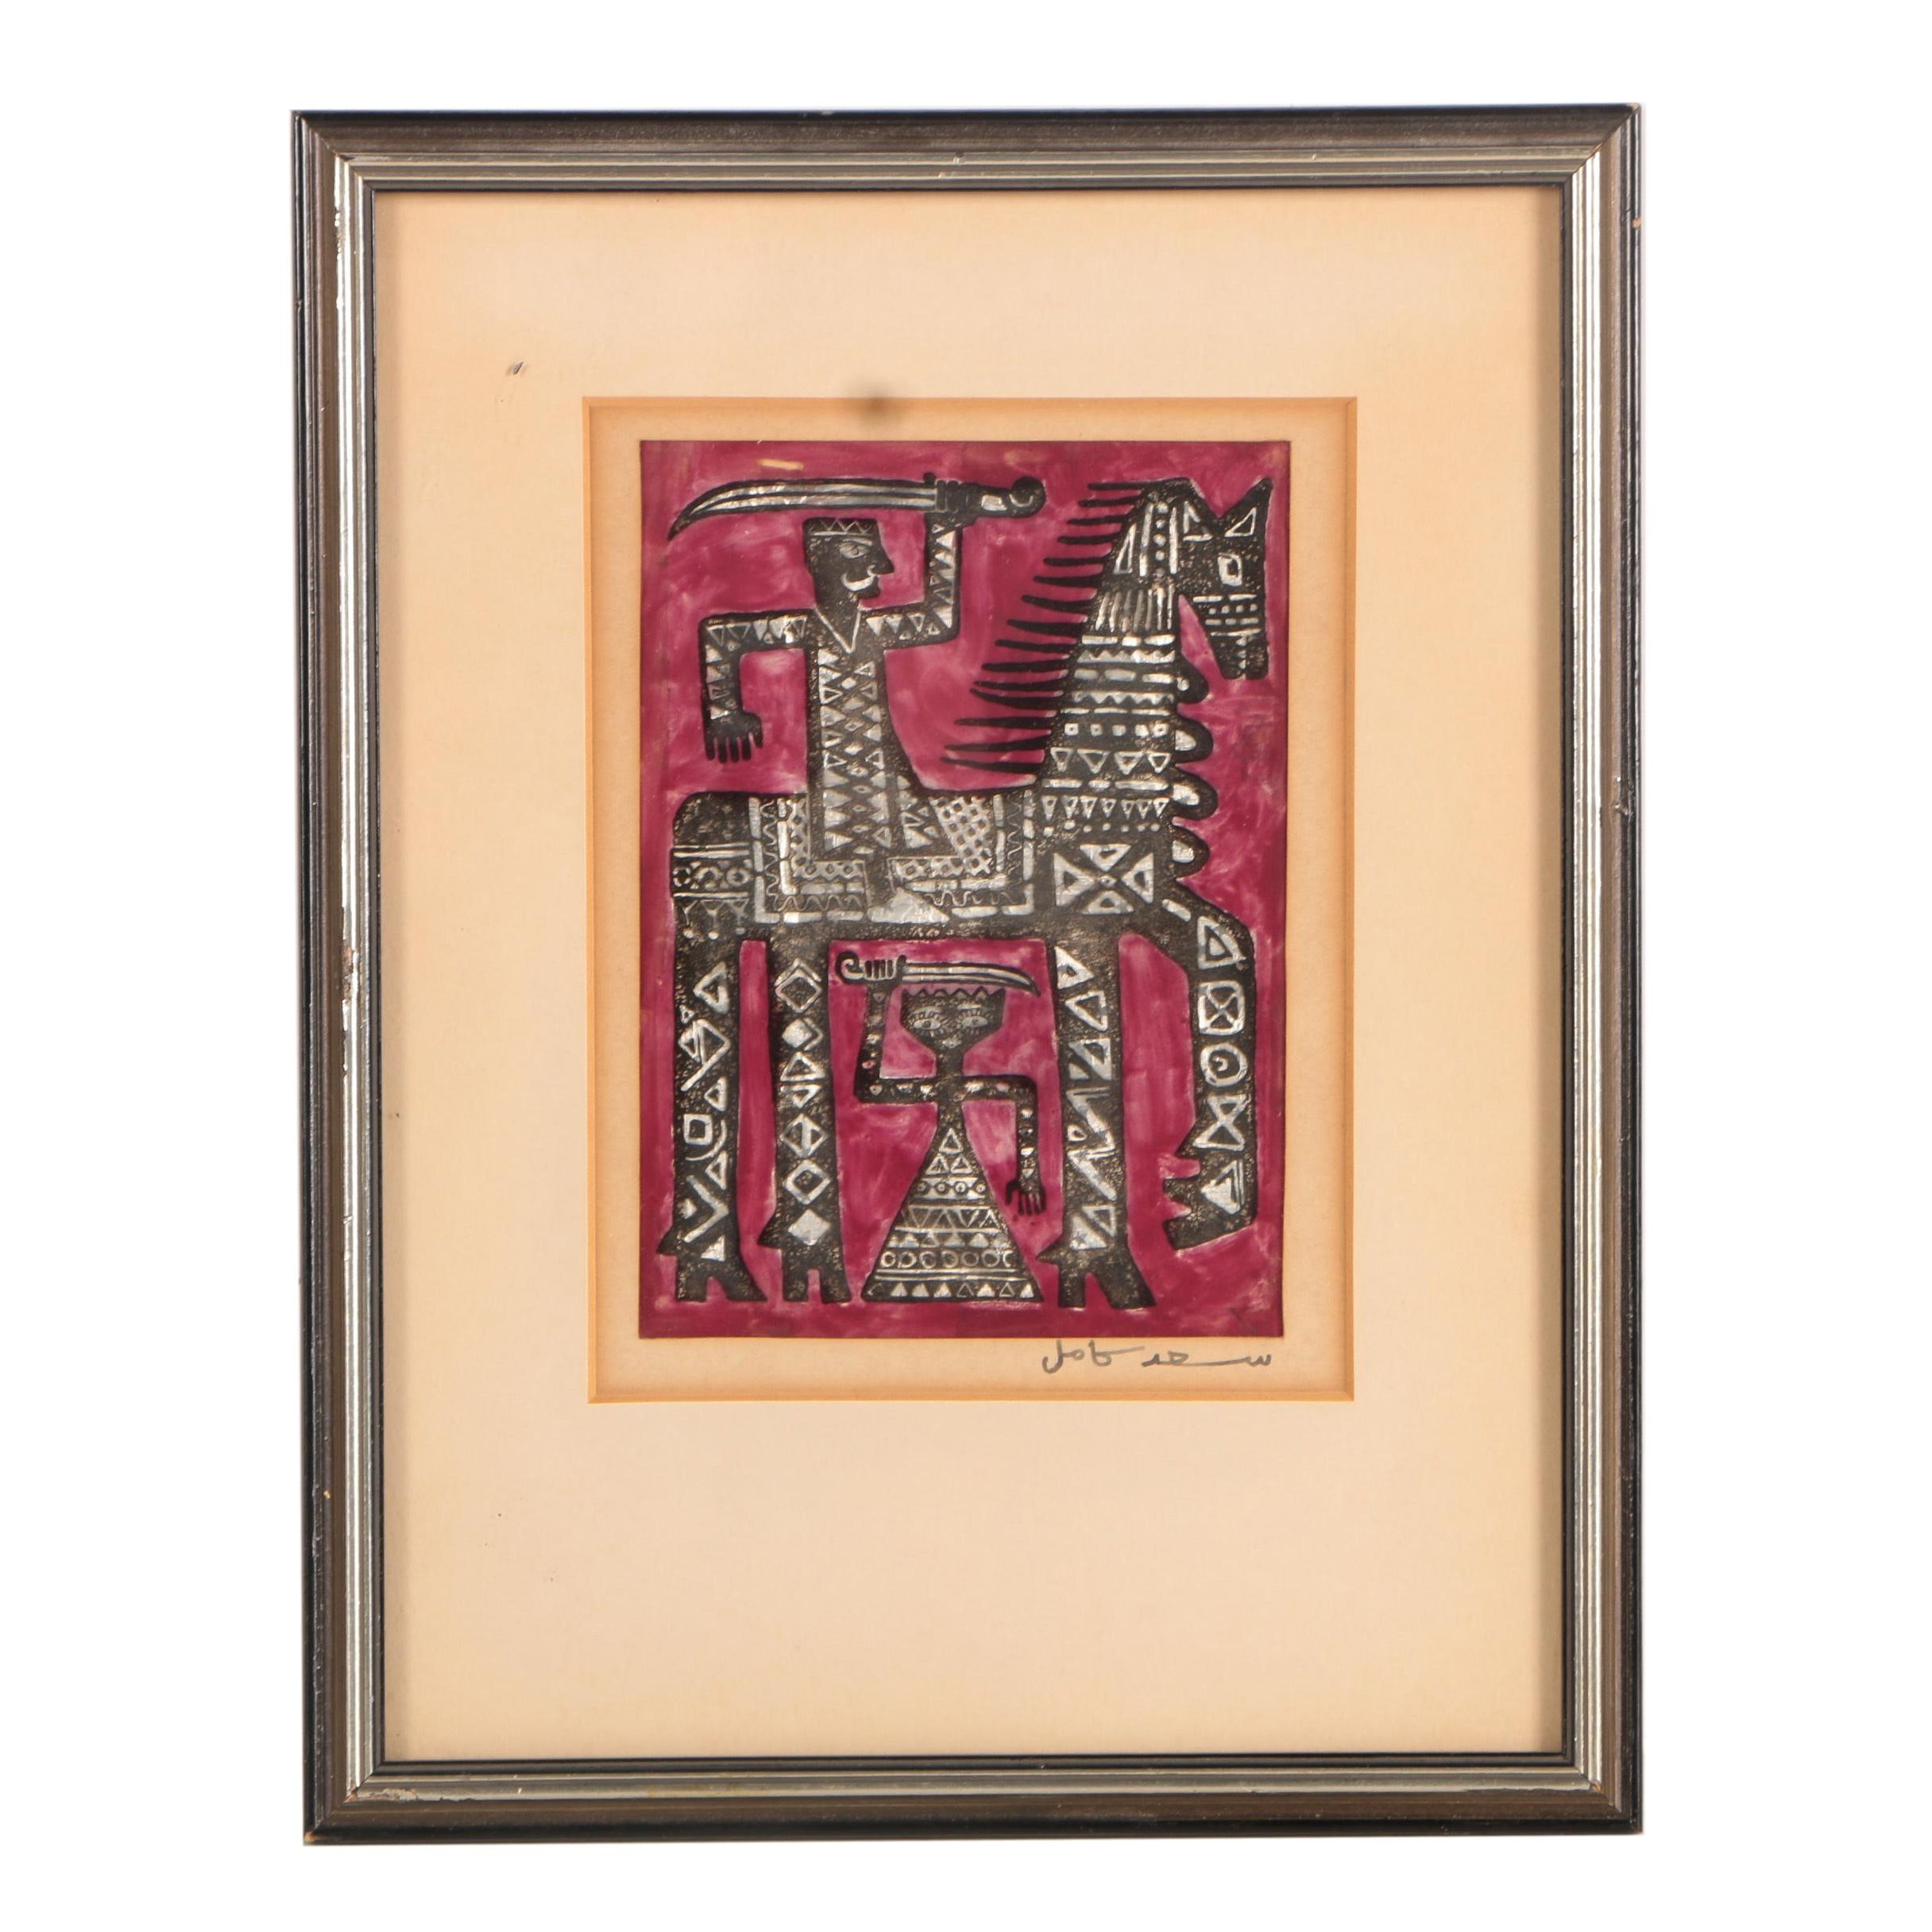 Mixed Media on Plastic of Abstract Horse and Rider